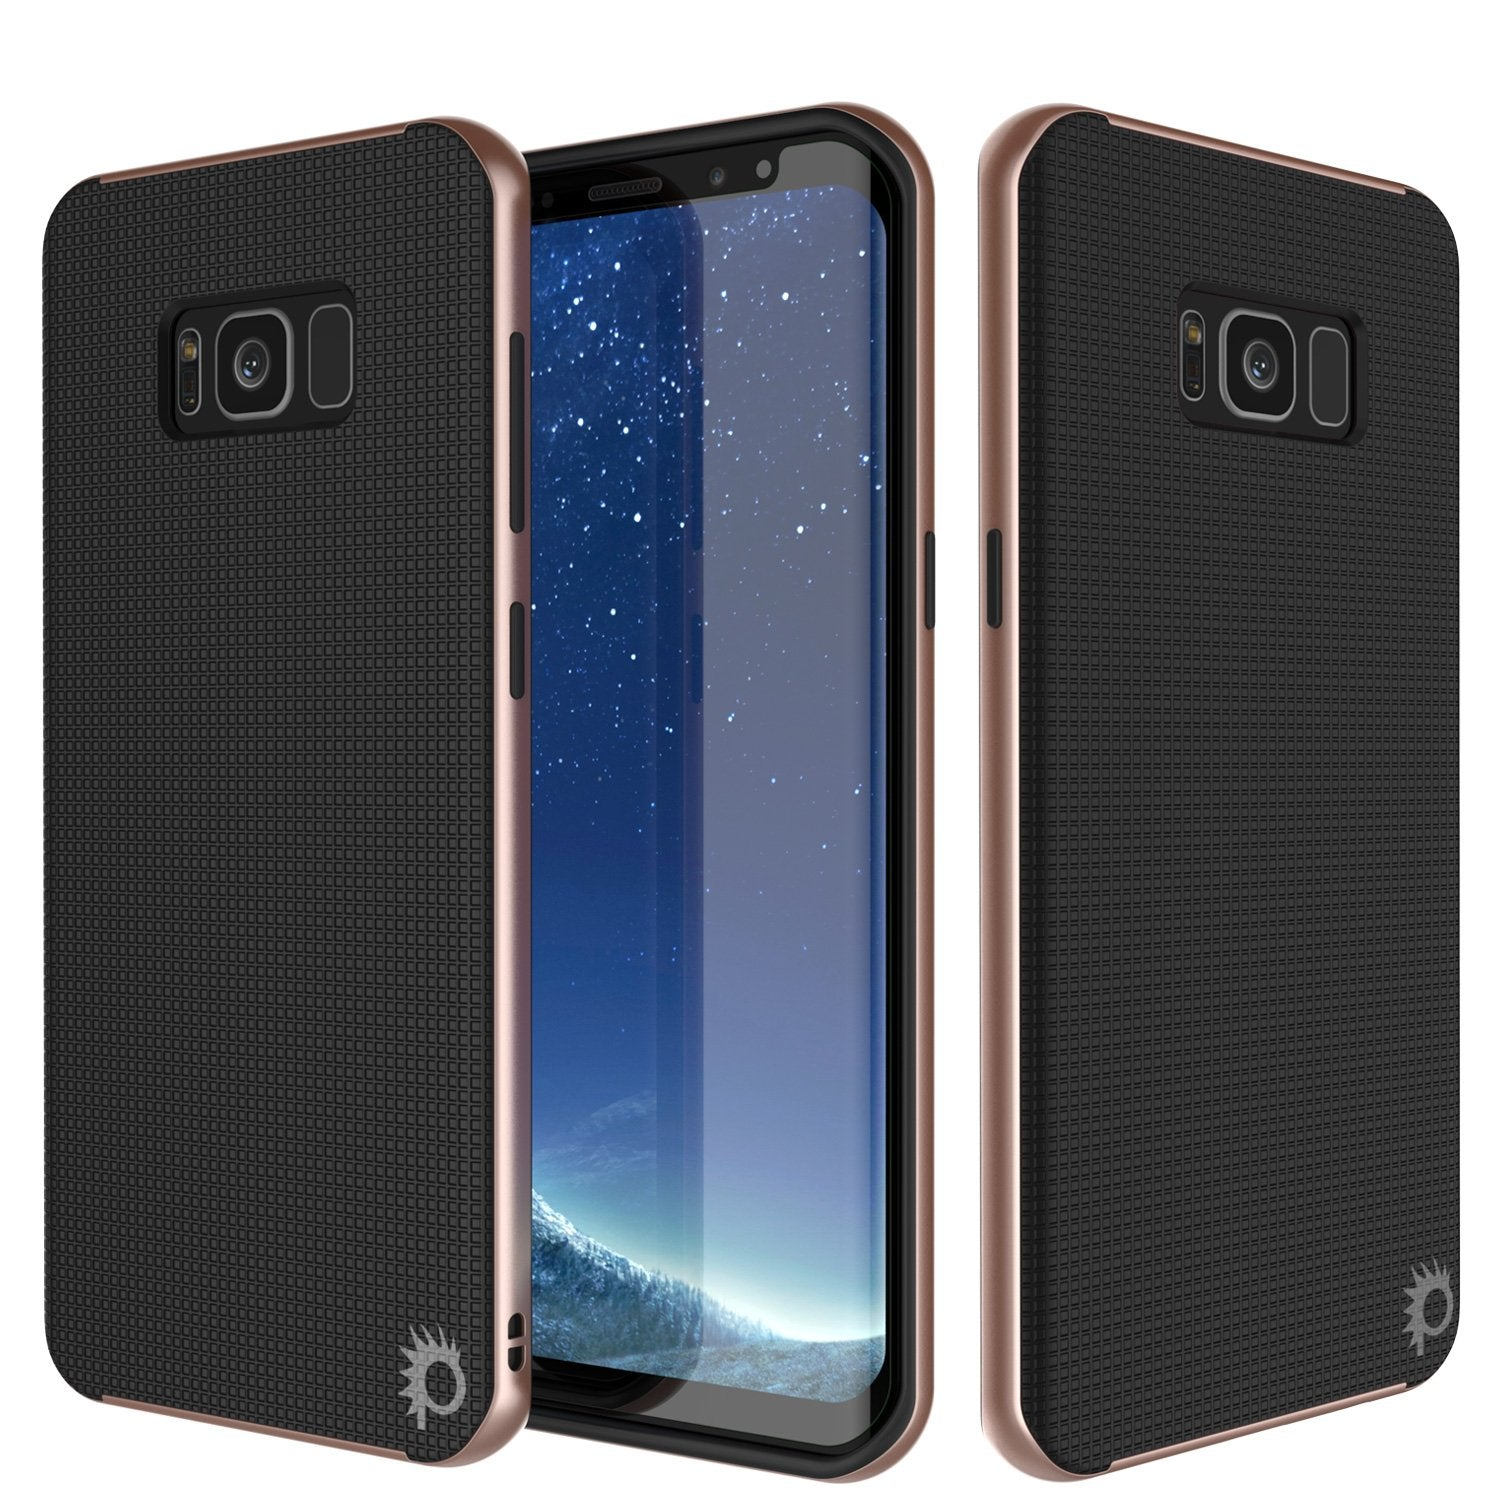 Galaxy S8 Case, PunkCase [Stealth Series] Hybrid 3-Piece Shockproof Dual Layer Cover [Non-Slip] [Soft TPU + PC Bumper] with PUNKSHIELD Screen Protector for Samsung S8 Edge [Rose Gold]